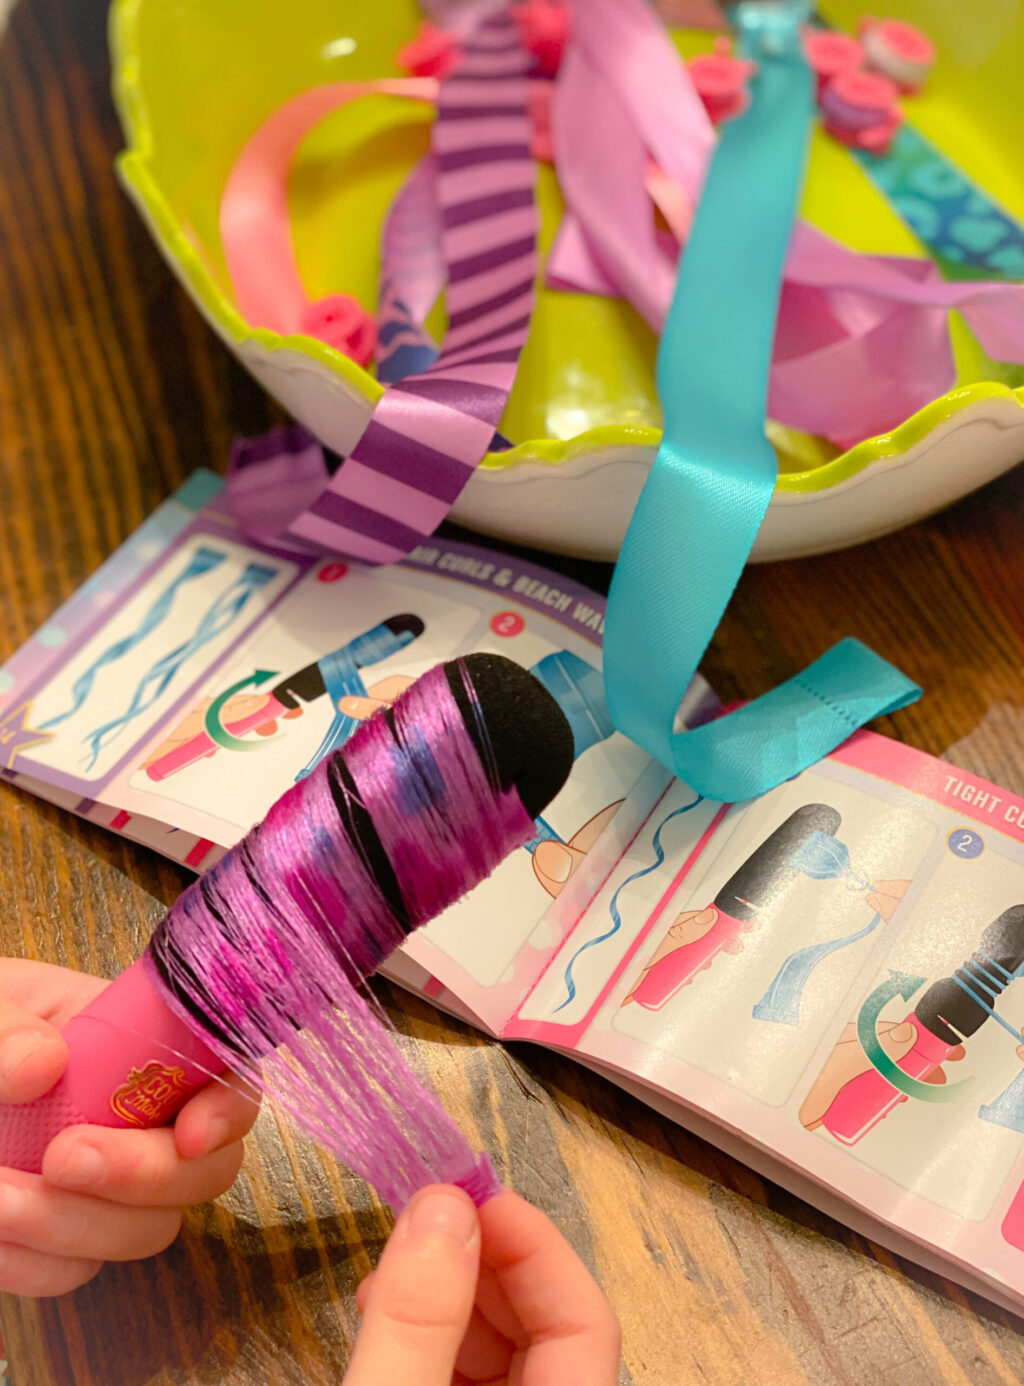 curling a purple hair extension over wood table with instruction booklet and green bowl filled with pink, purple and turquoise hair extensions